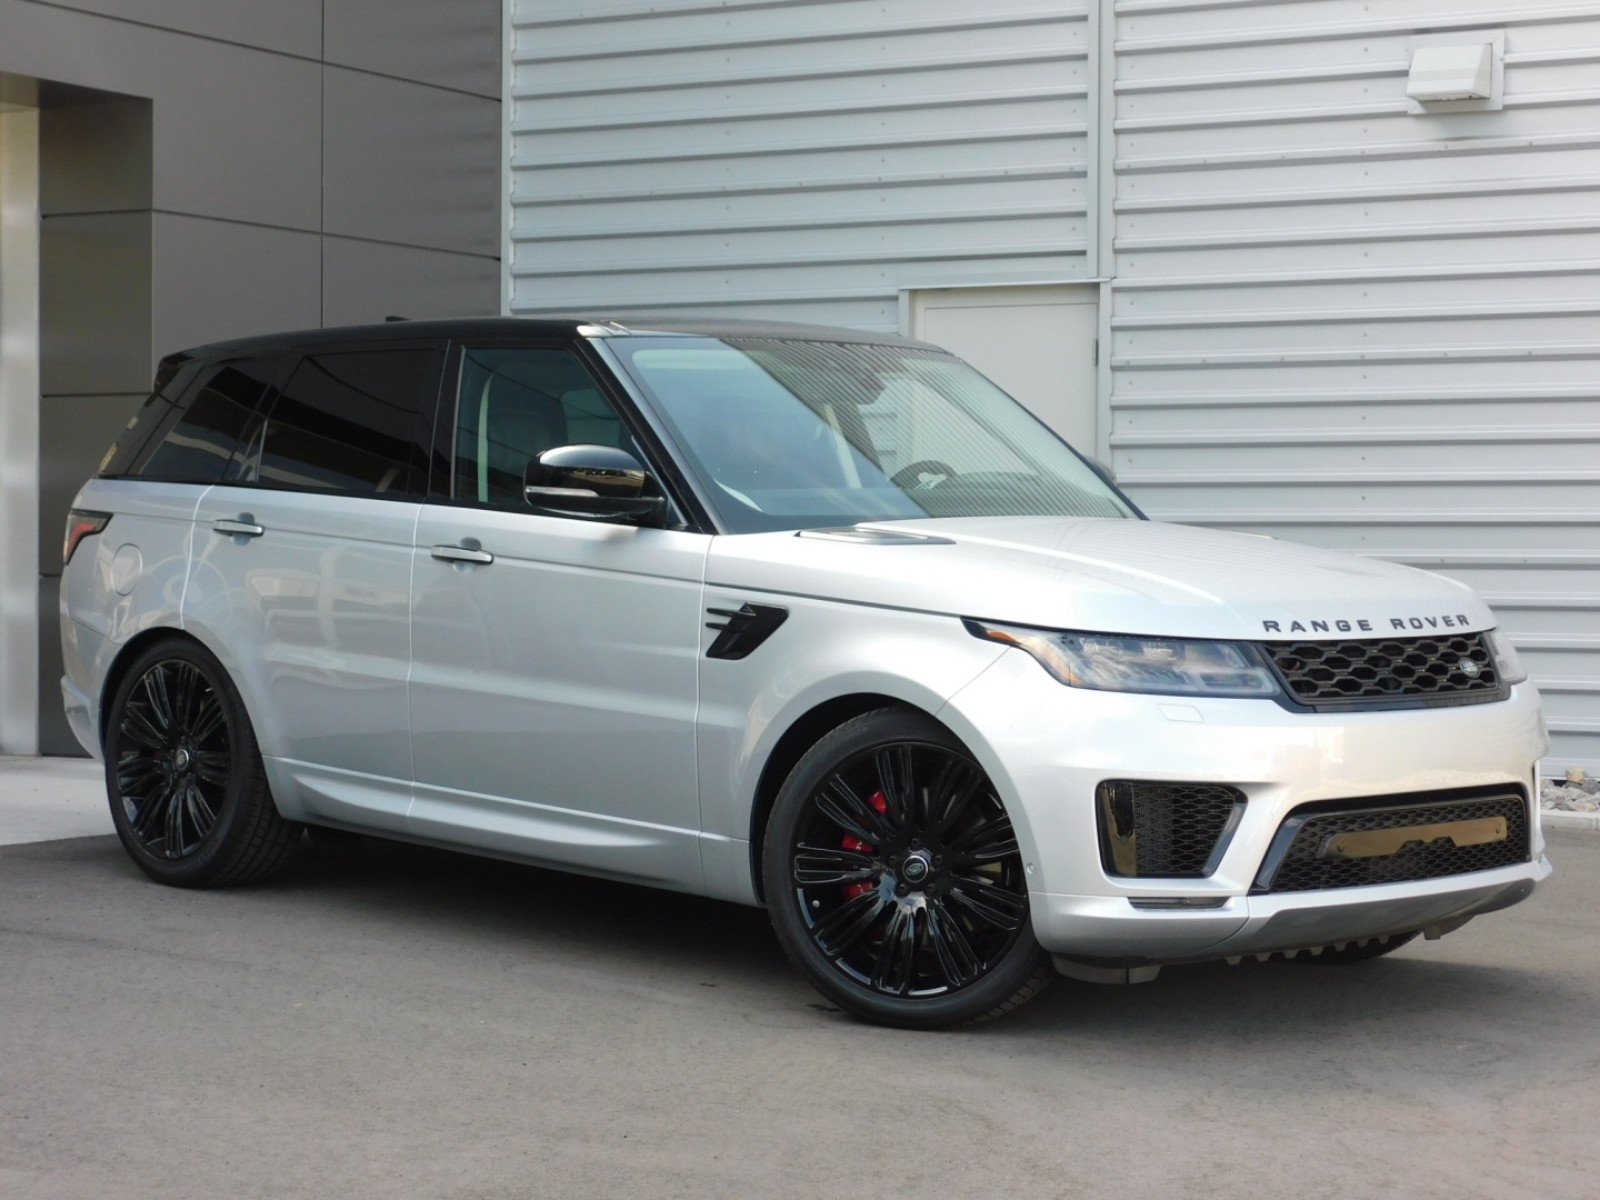 2018 Land Rover Range Rover Evoque >> New 2018 Land Rover Range Rover Sport HSE Dynamic Sport Utility #1R8303 | Ken Garff Automotive Group